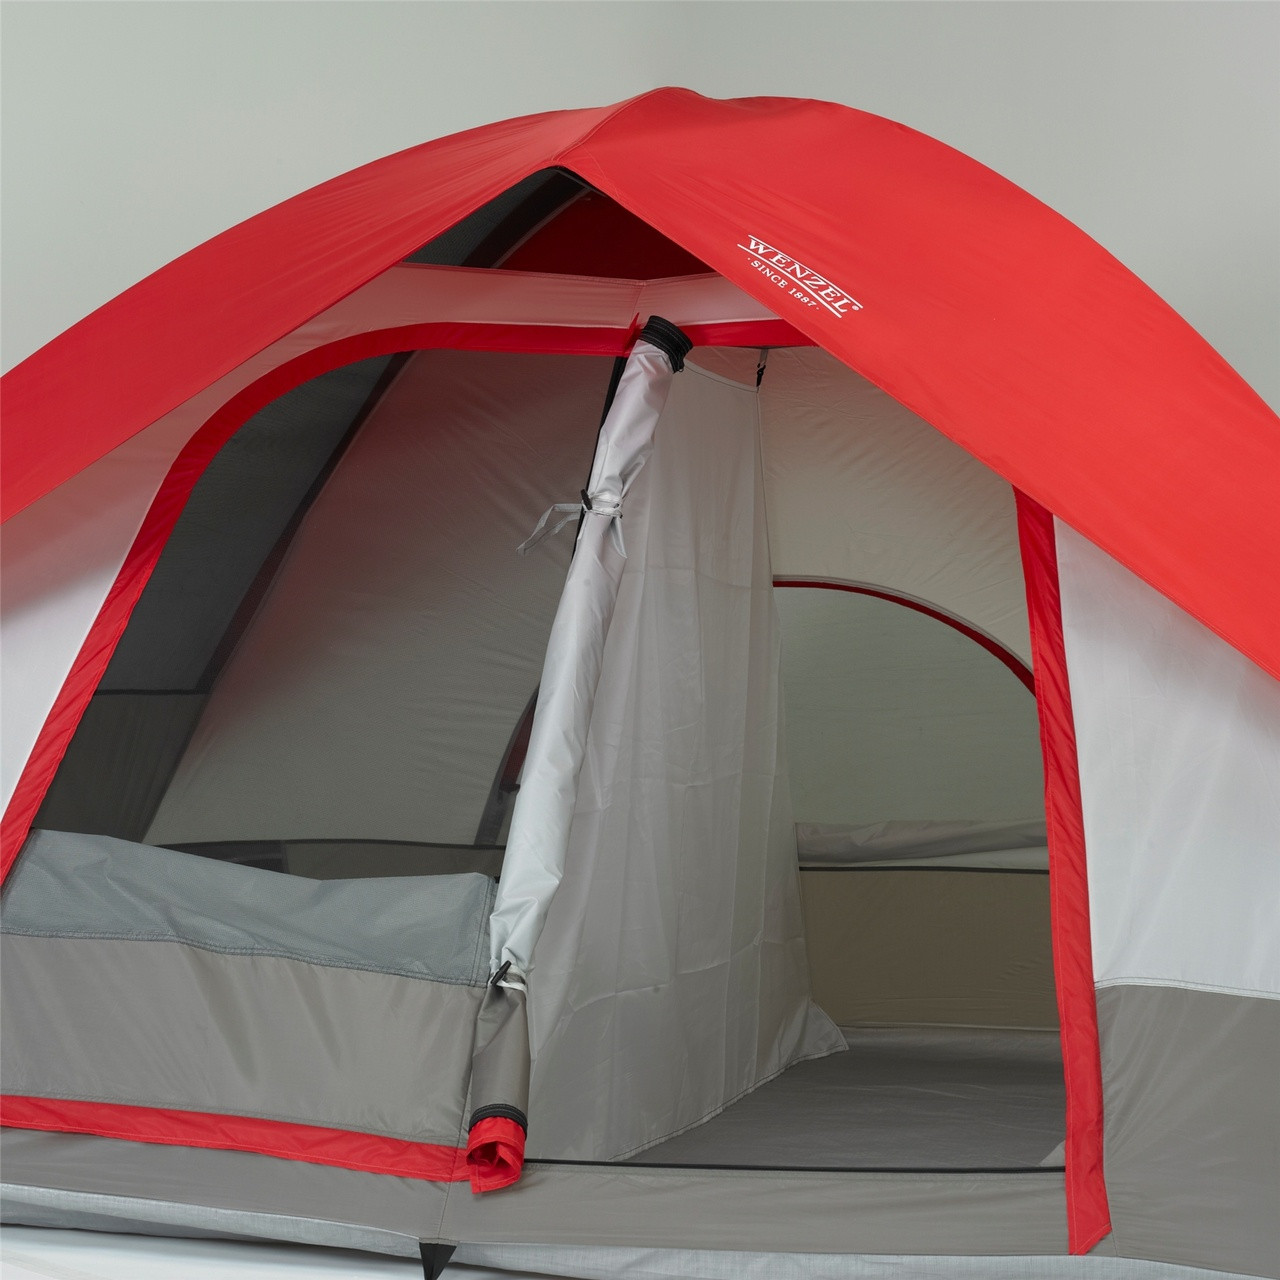 Wenzel Pine Ridge 5 tent, red gray and tan, setup with the rain fly on and the right side main door rolled open with the tent room divider inserted showing half of the tent